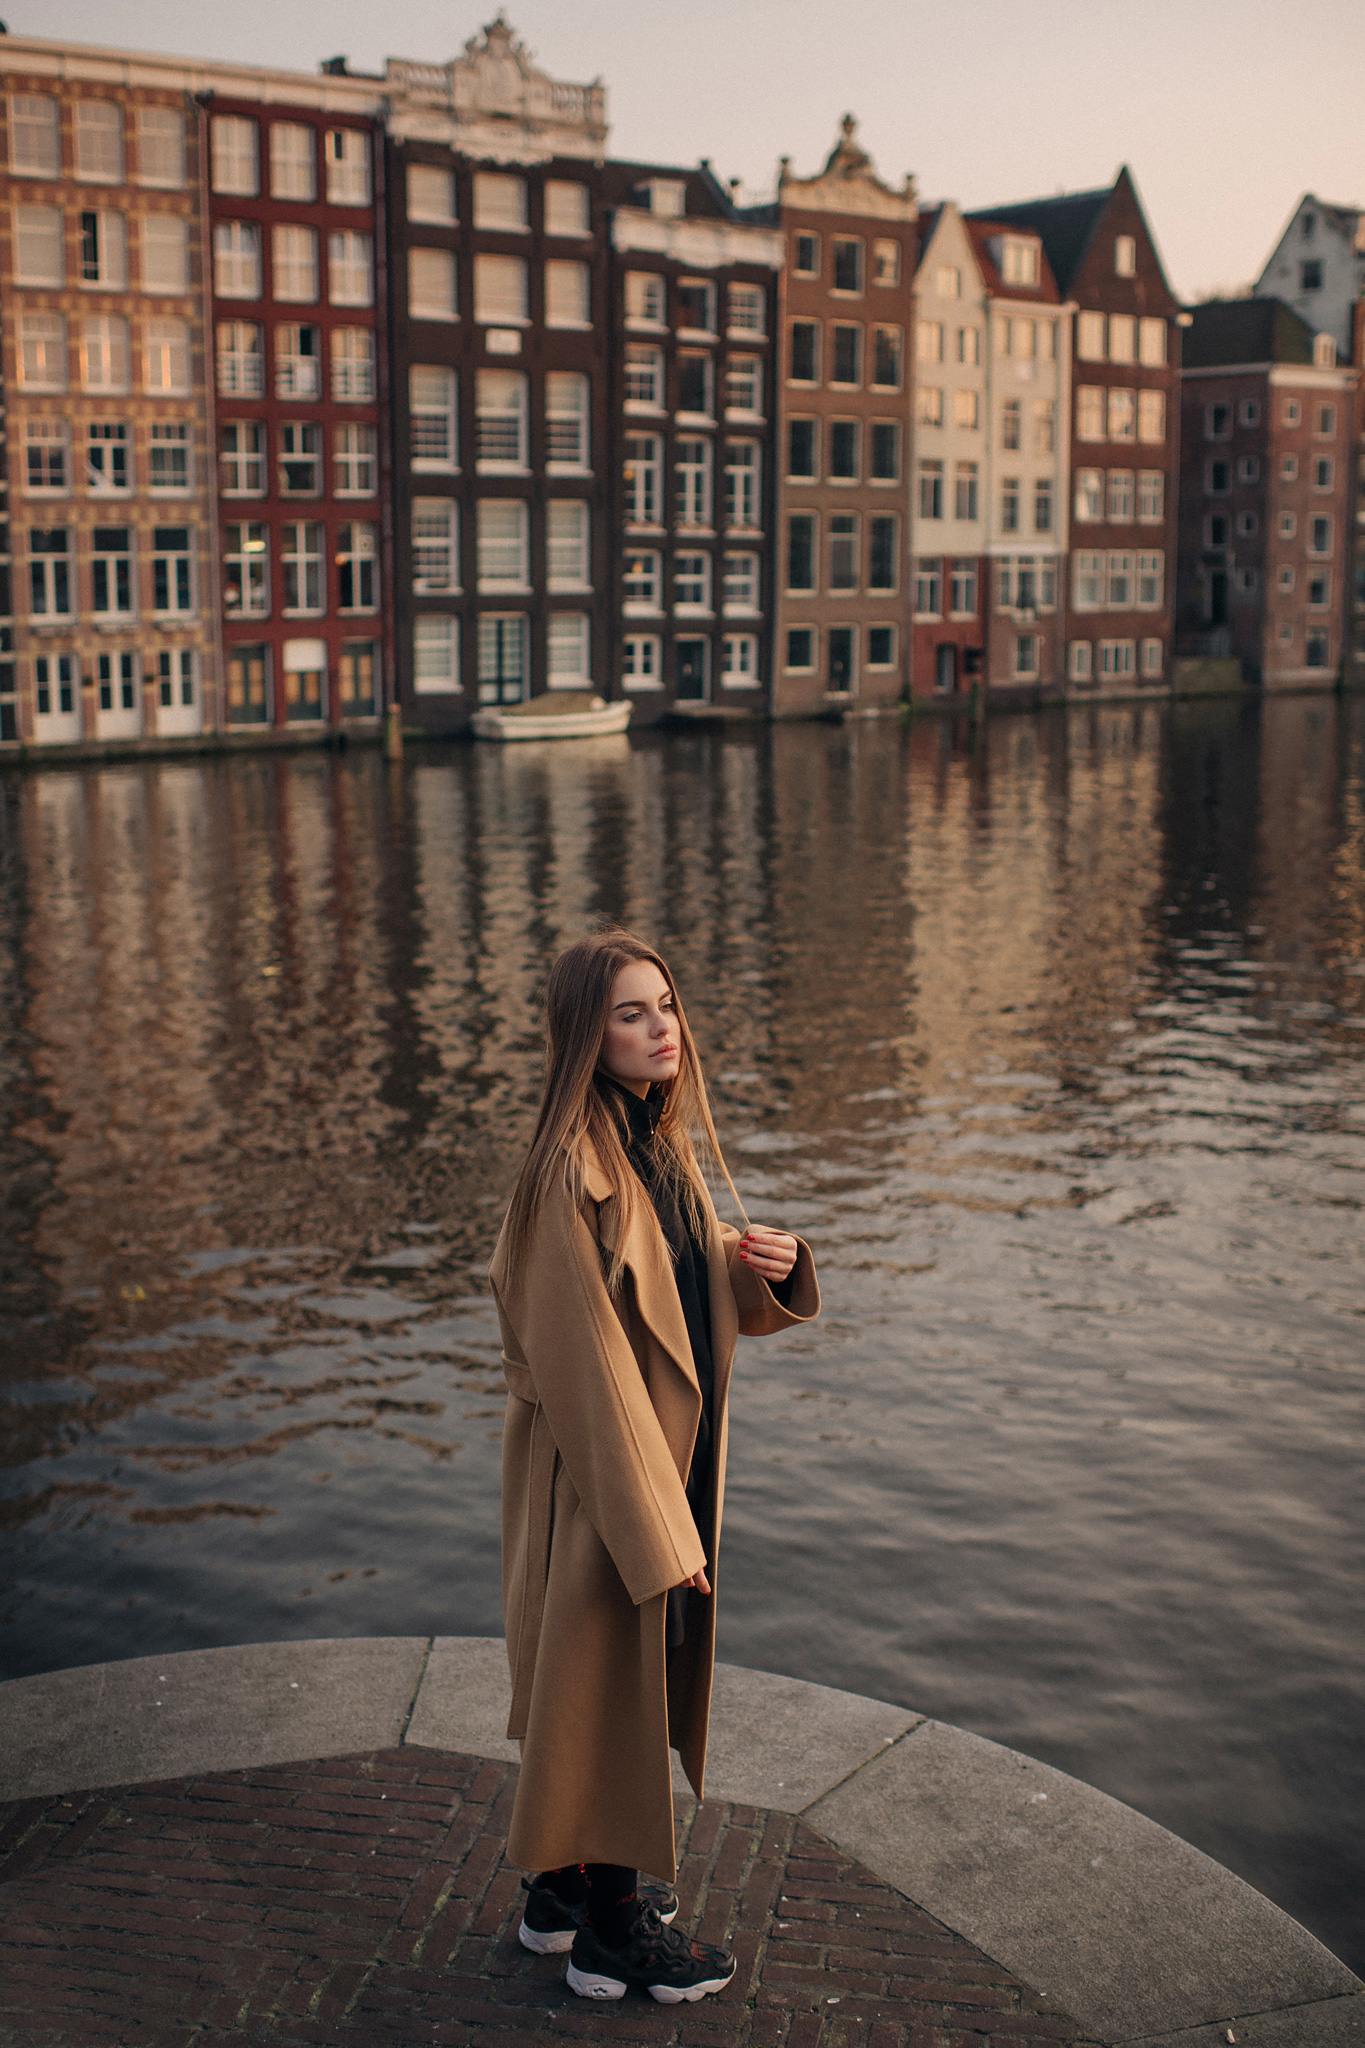 Girl by the canal in Amsterdam